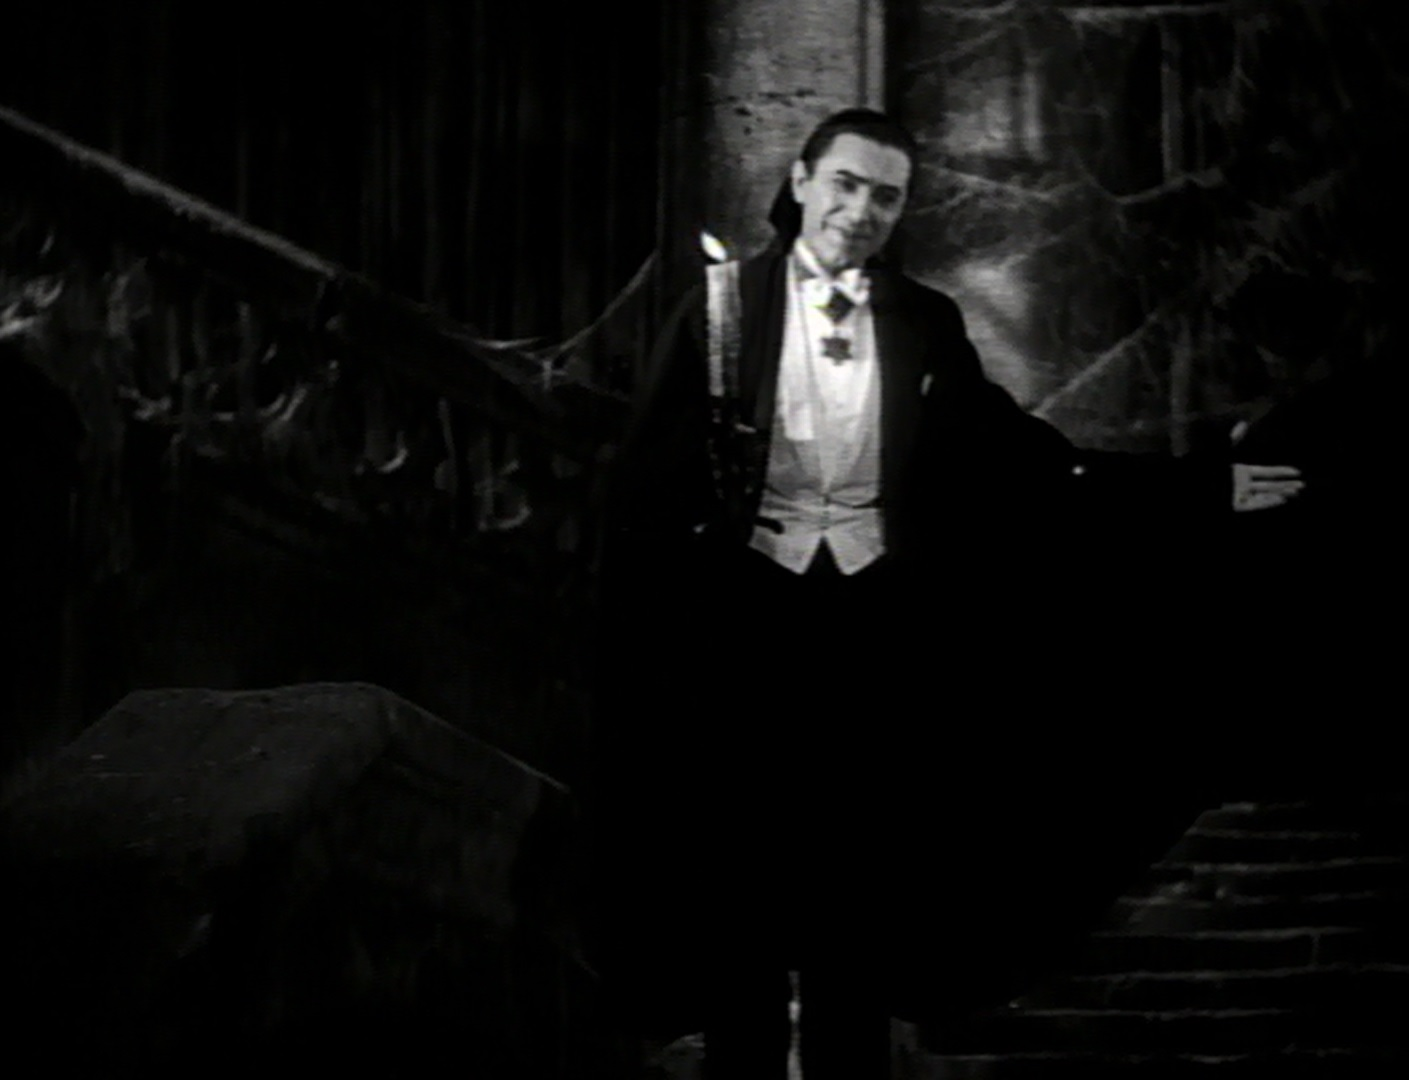 count dracula midnite reviews an iconic adaptation of bram stoker s most famous novel dracula brings to life the gothic atmosphere of its source material despite emphasizing many